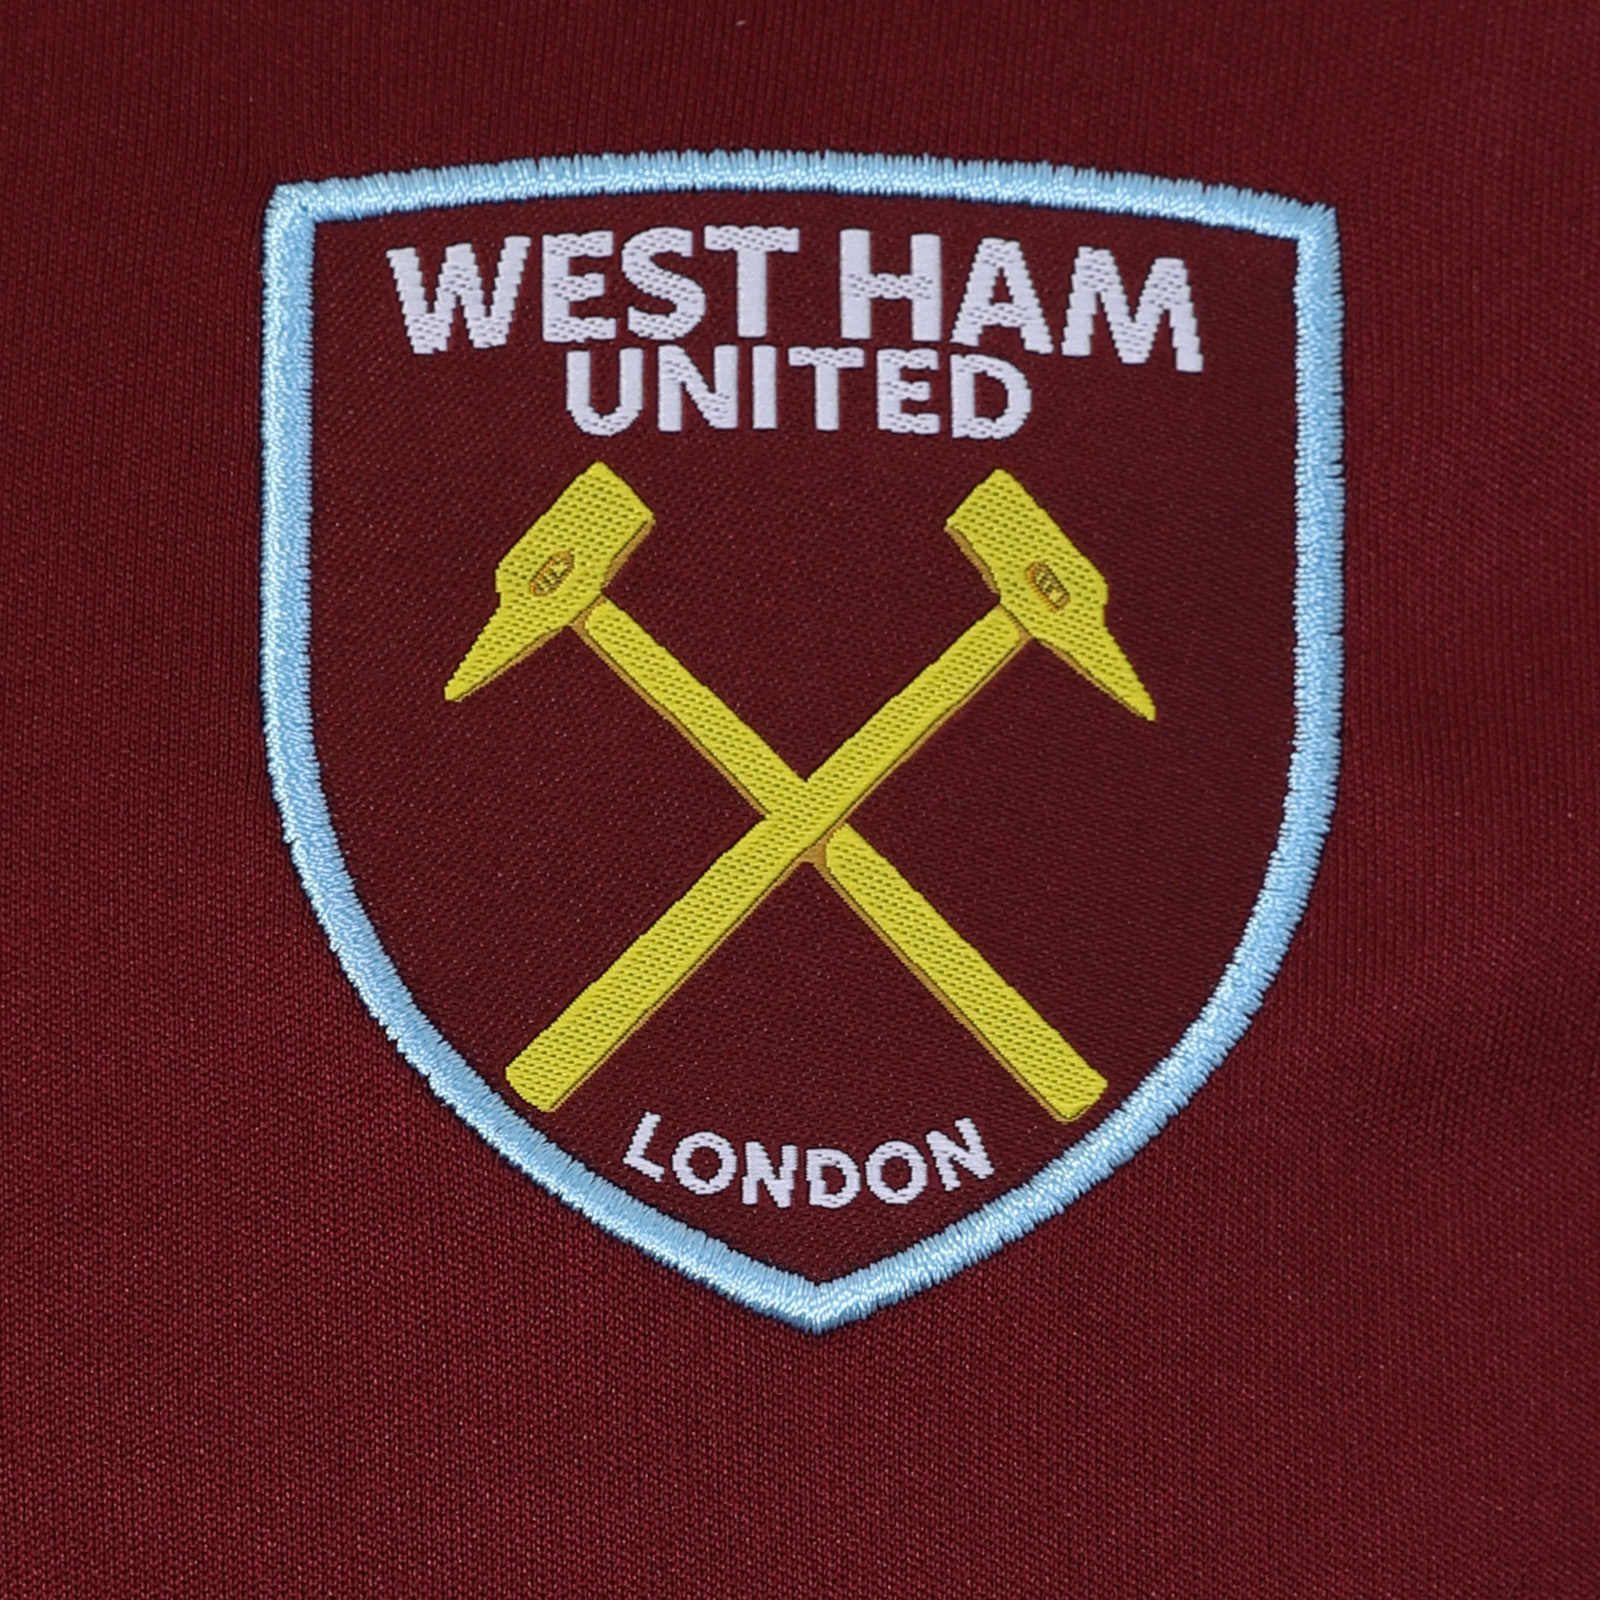 West-Ham-United-FC-Official-Football-Gift-Mens-Poly-Training-Kit-T-Shirt miniatuur 5